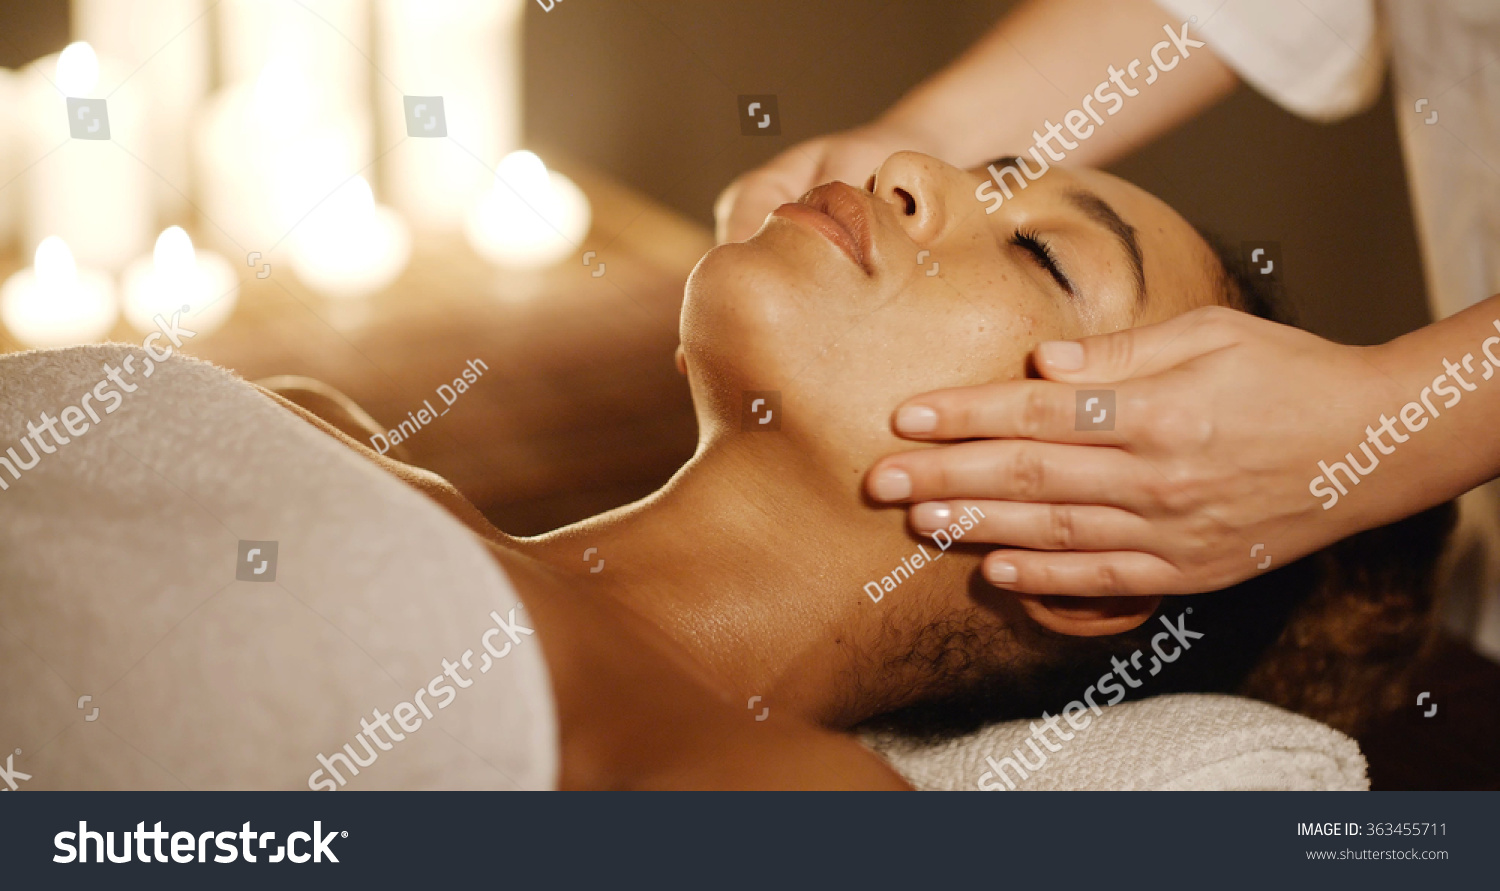 omegle norsk tantra massage nice